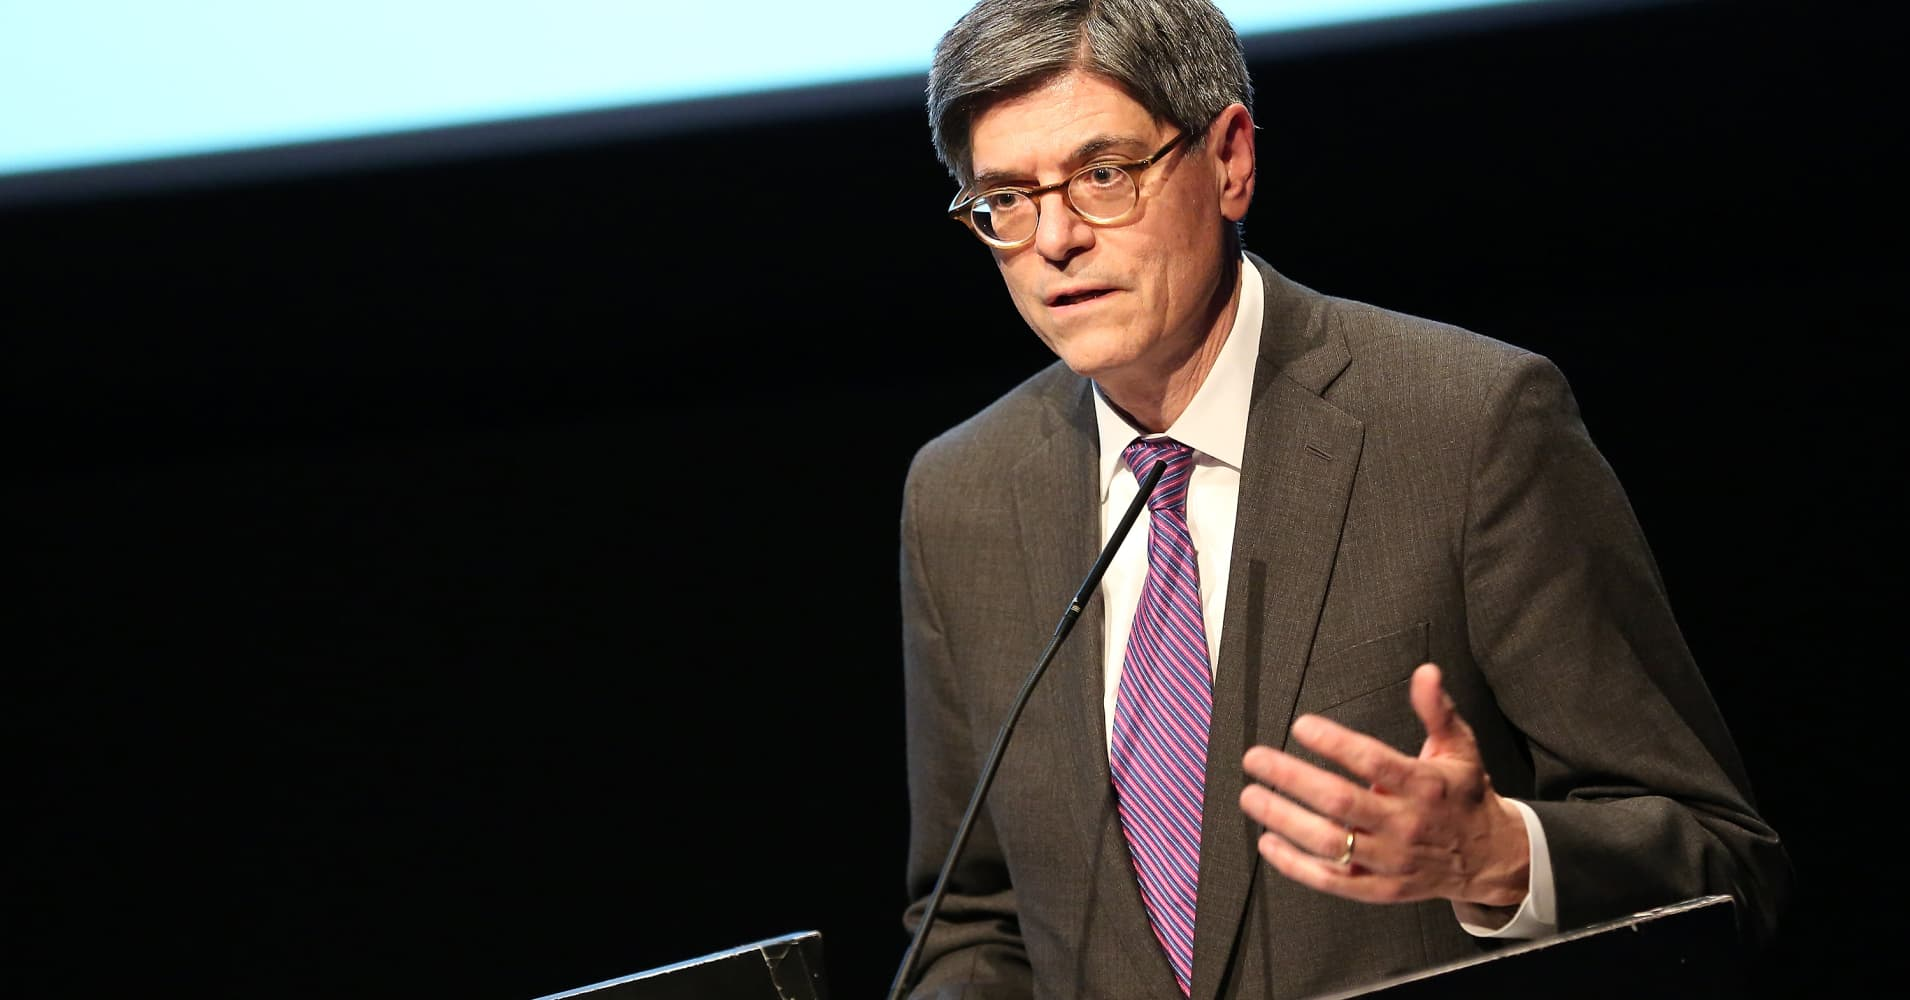 'More bumps in the road' before US-China trade deal, former Treasury Secretary Jack Lew warns